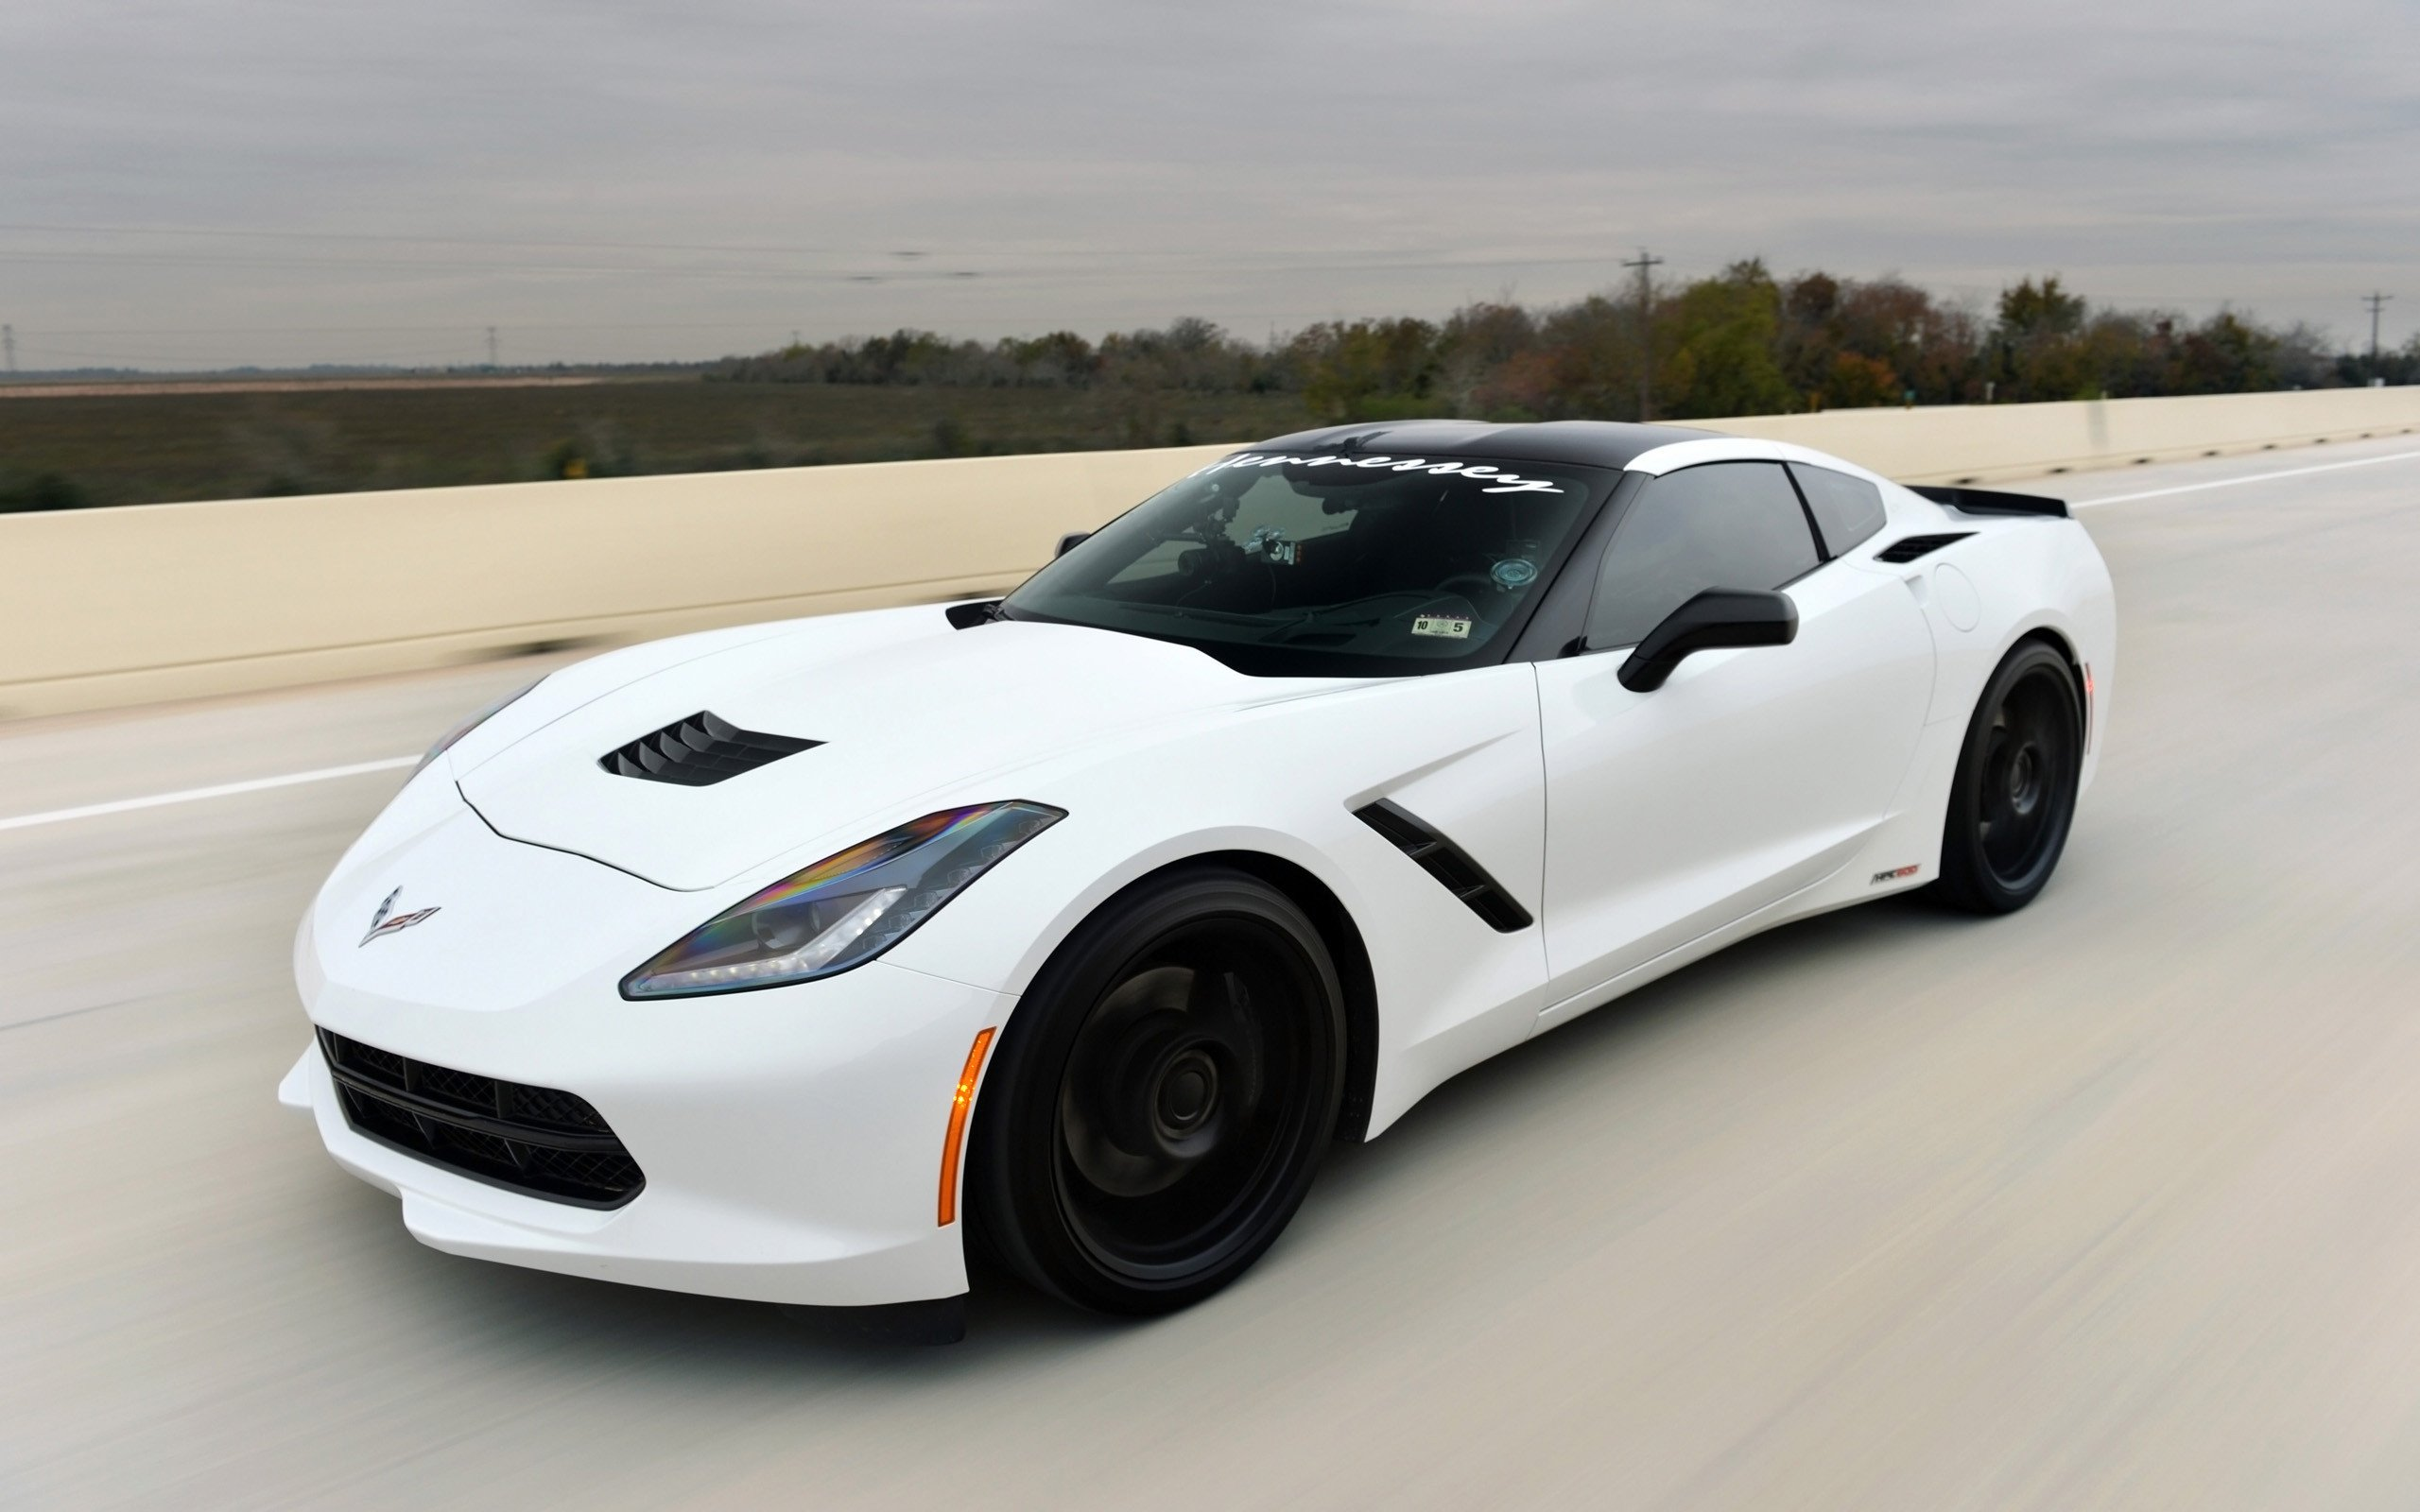 Corvette Stingray 2015 Wallpapers HD 2560x1600